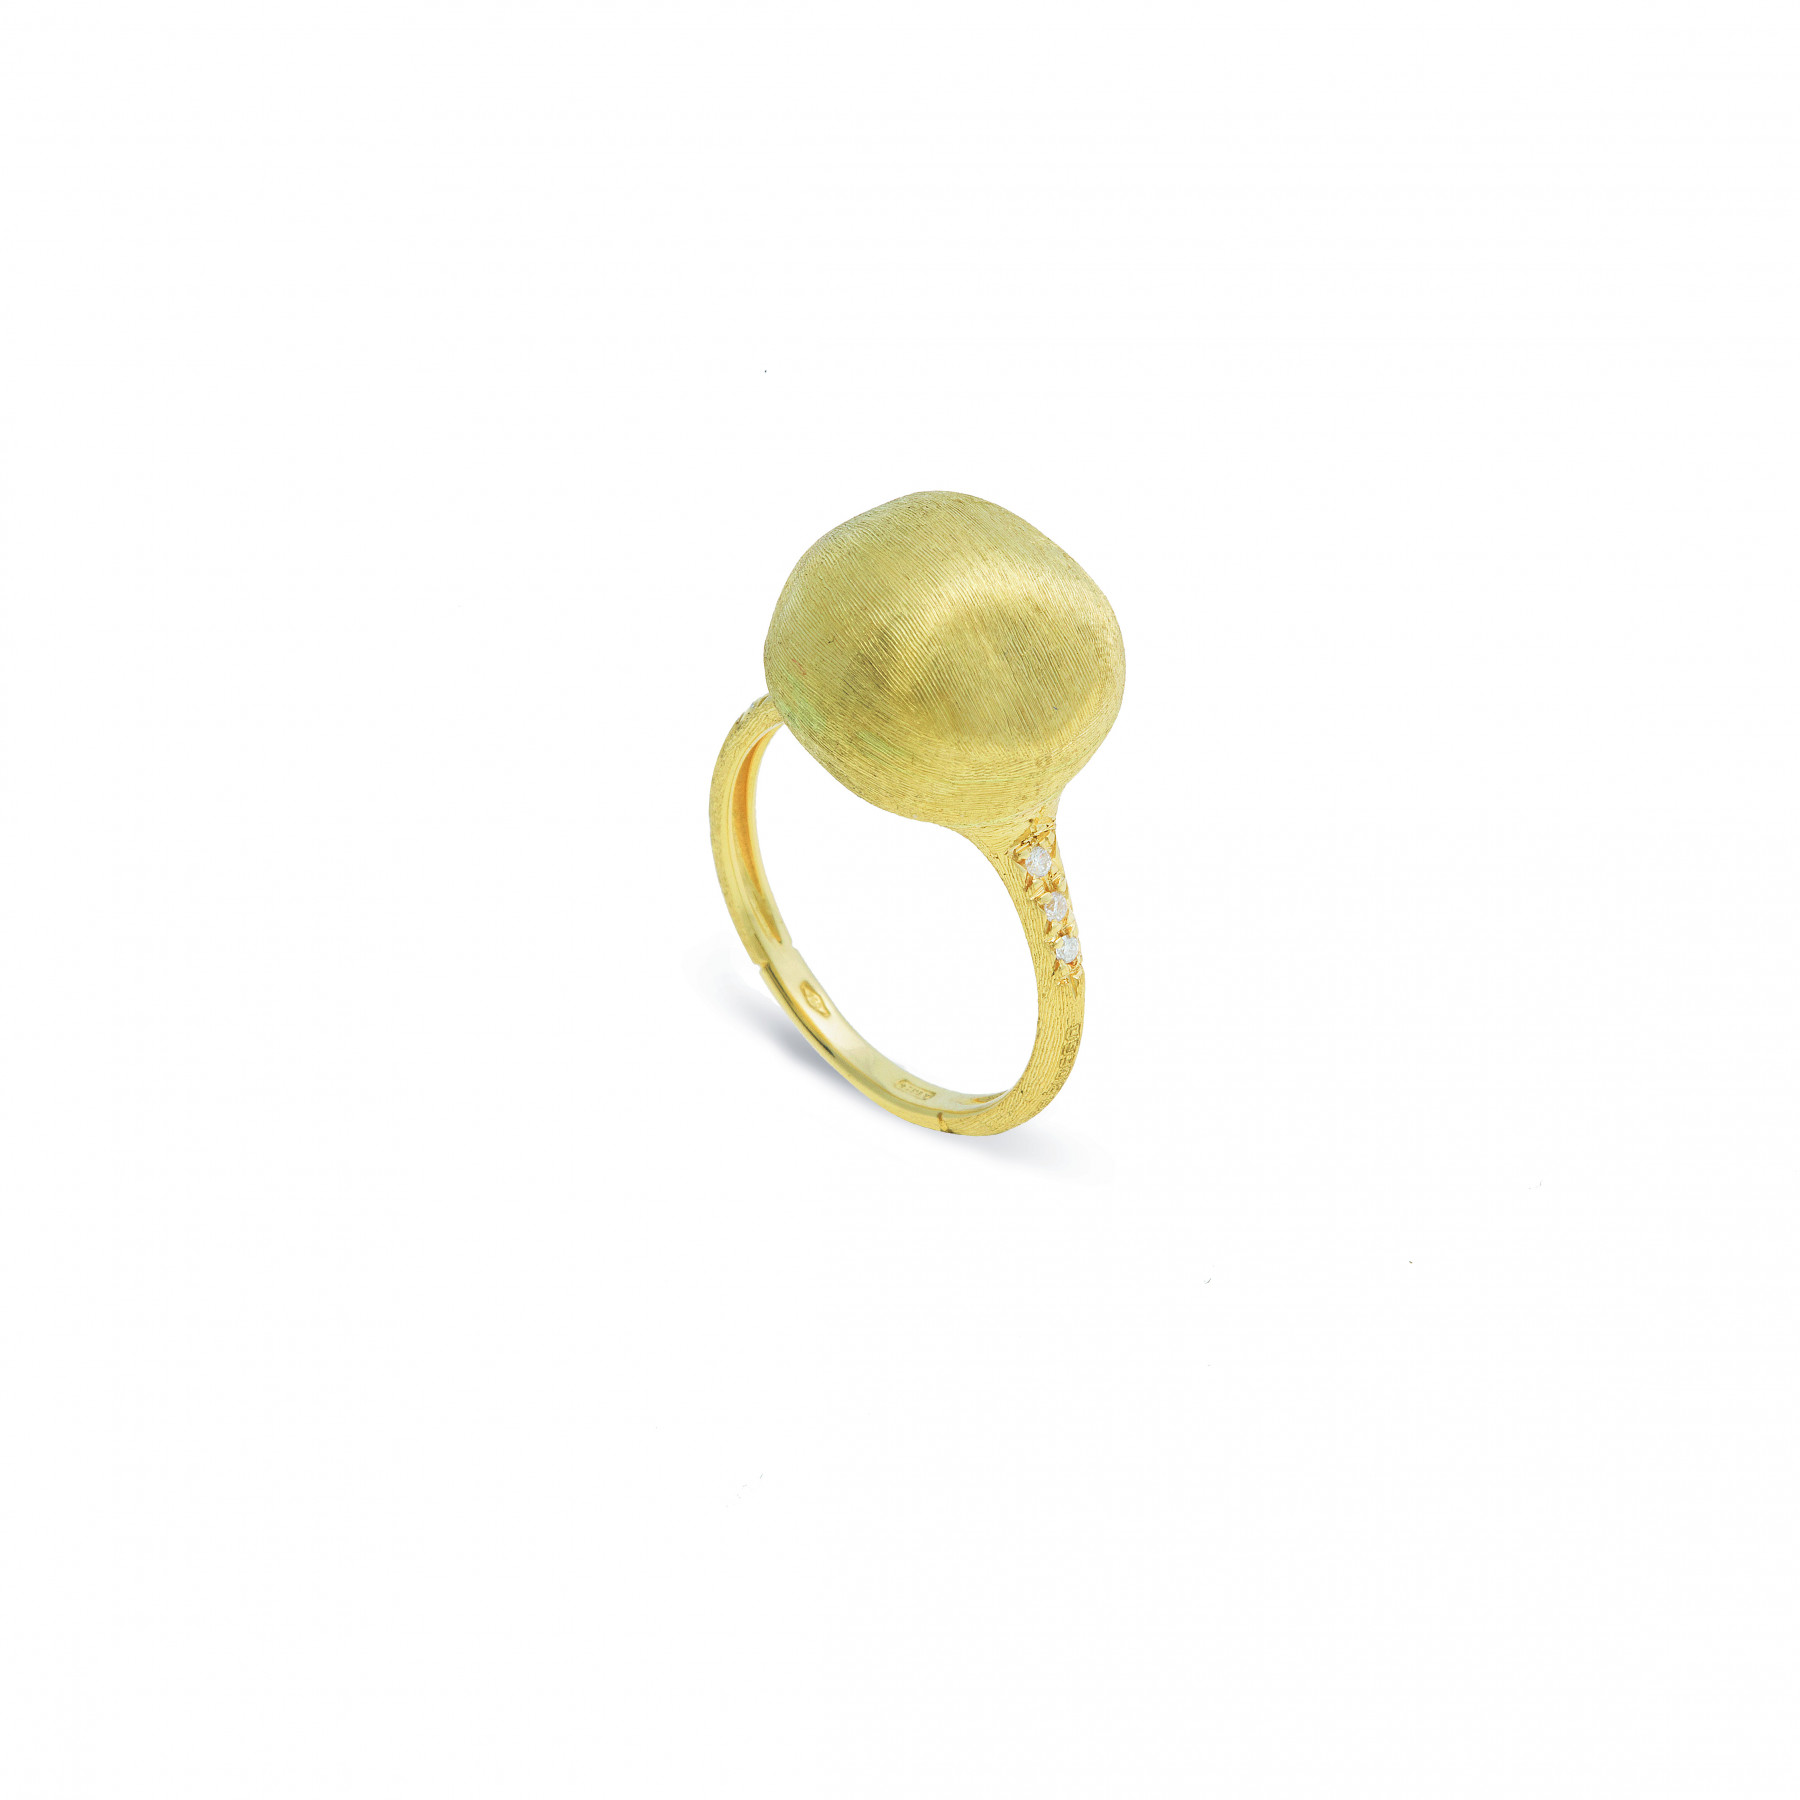 Marco Bicego Africa Boules 18K Gold Ring with Diamonds